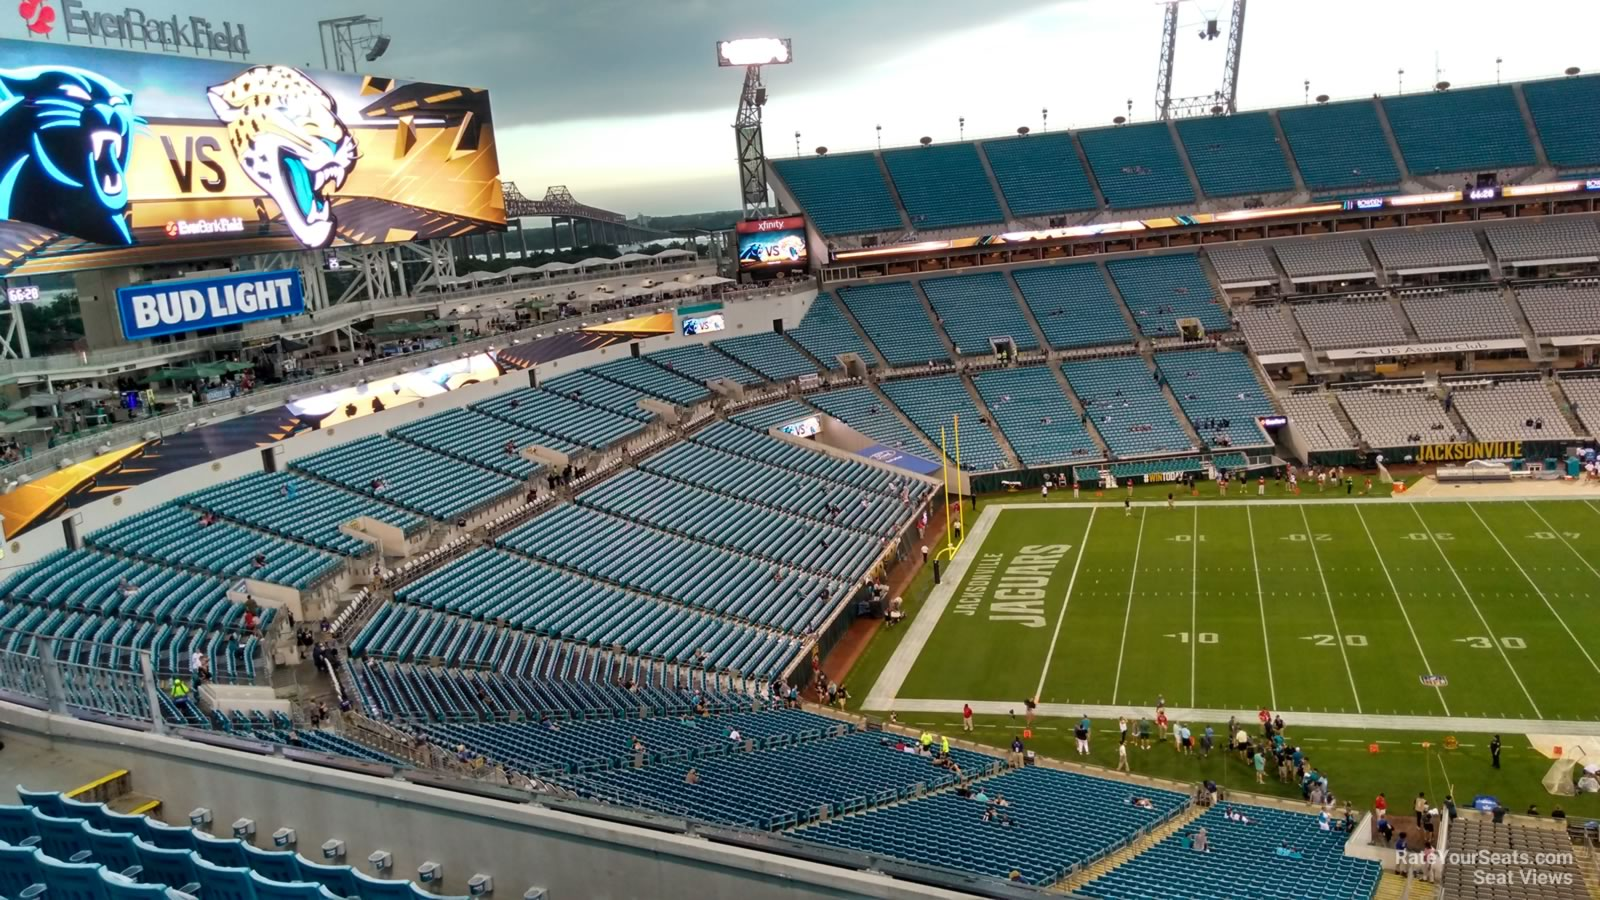 Section 412 seat view